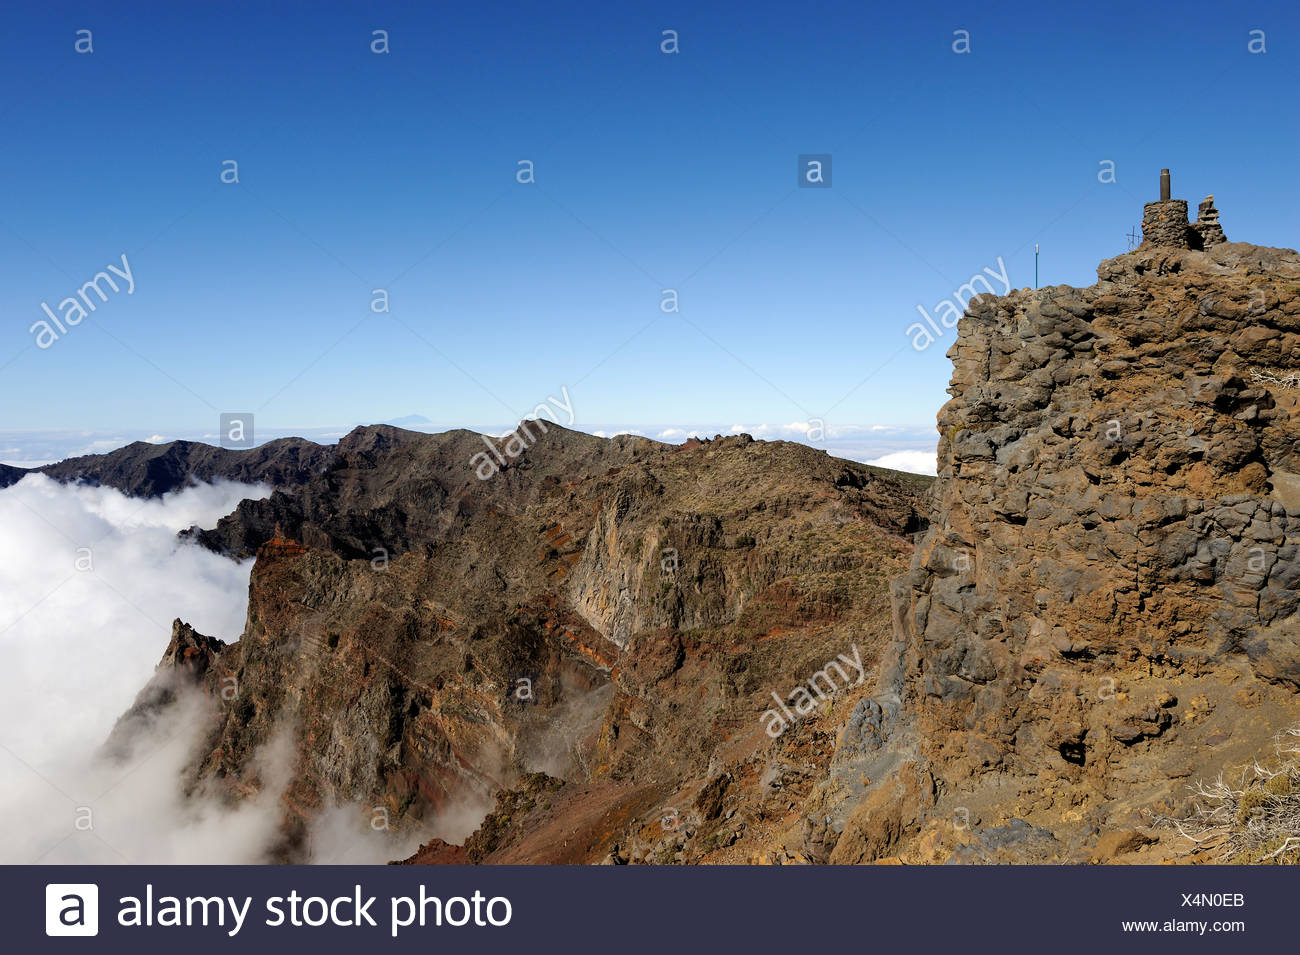 Summit of the Pico Fuente Nueva with a sea of clouds in the Caldera de Taburiente National Park, La Palma, Canary Islands, Spain - Stock Image